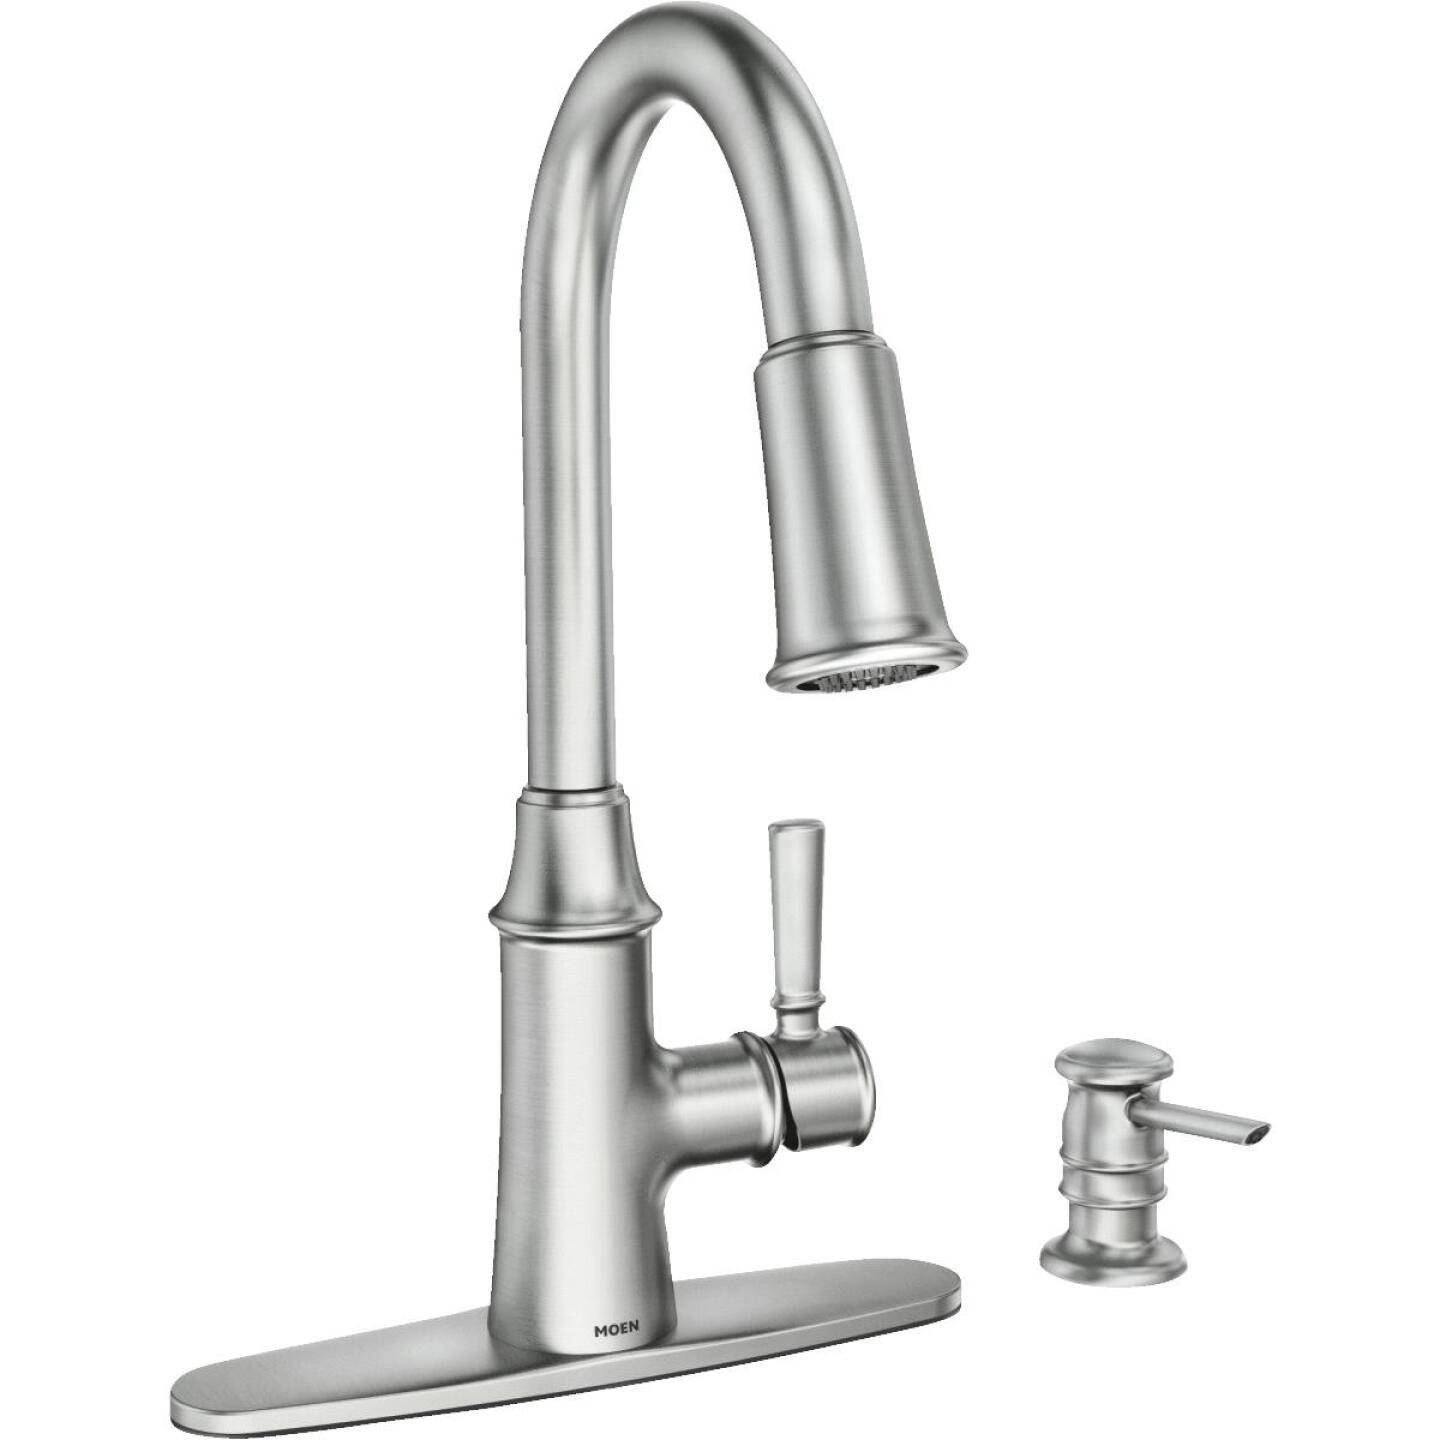 Moen Caris Single Handle Lever Kitchen Faucet with Soap ...